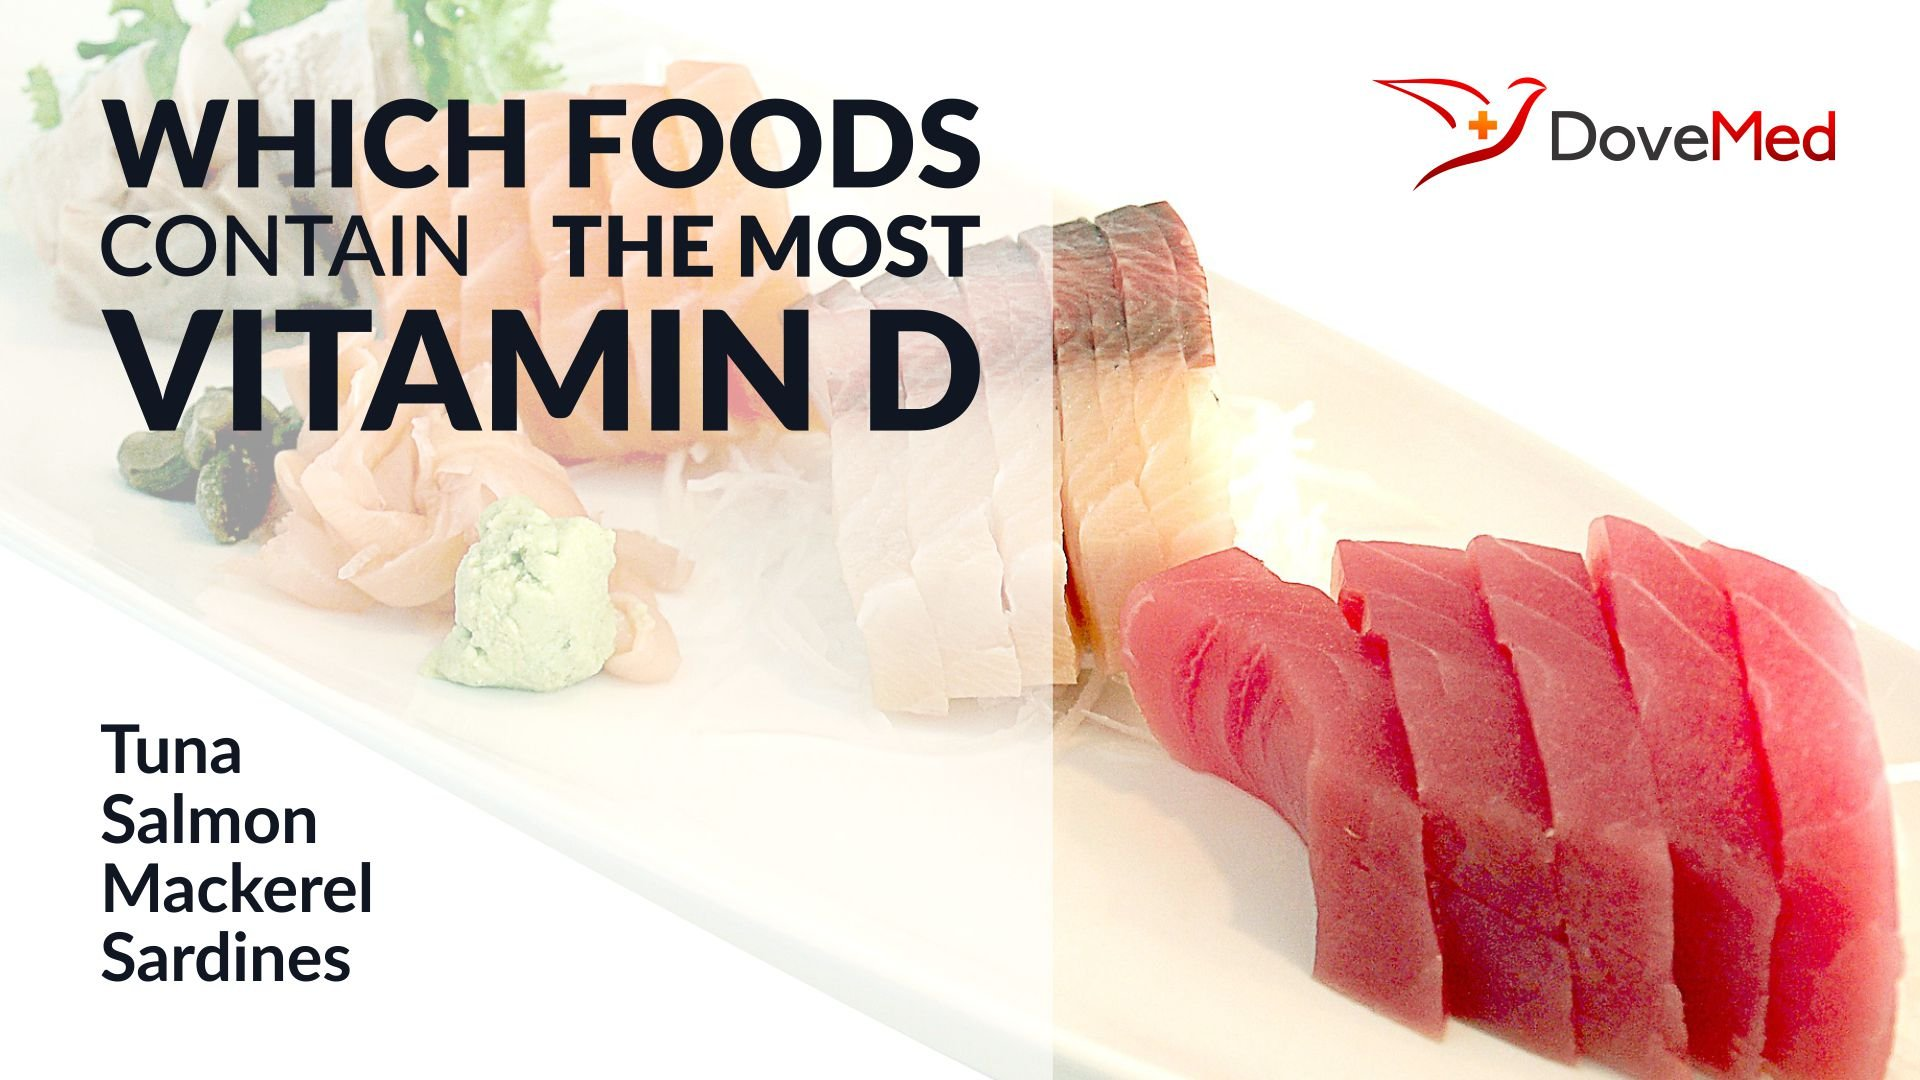 which foods contain the most vitamin d